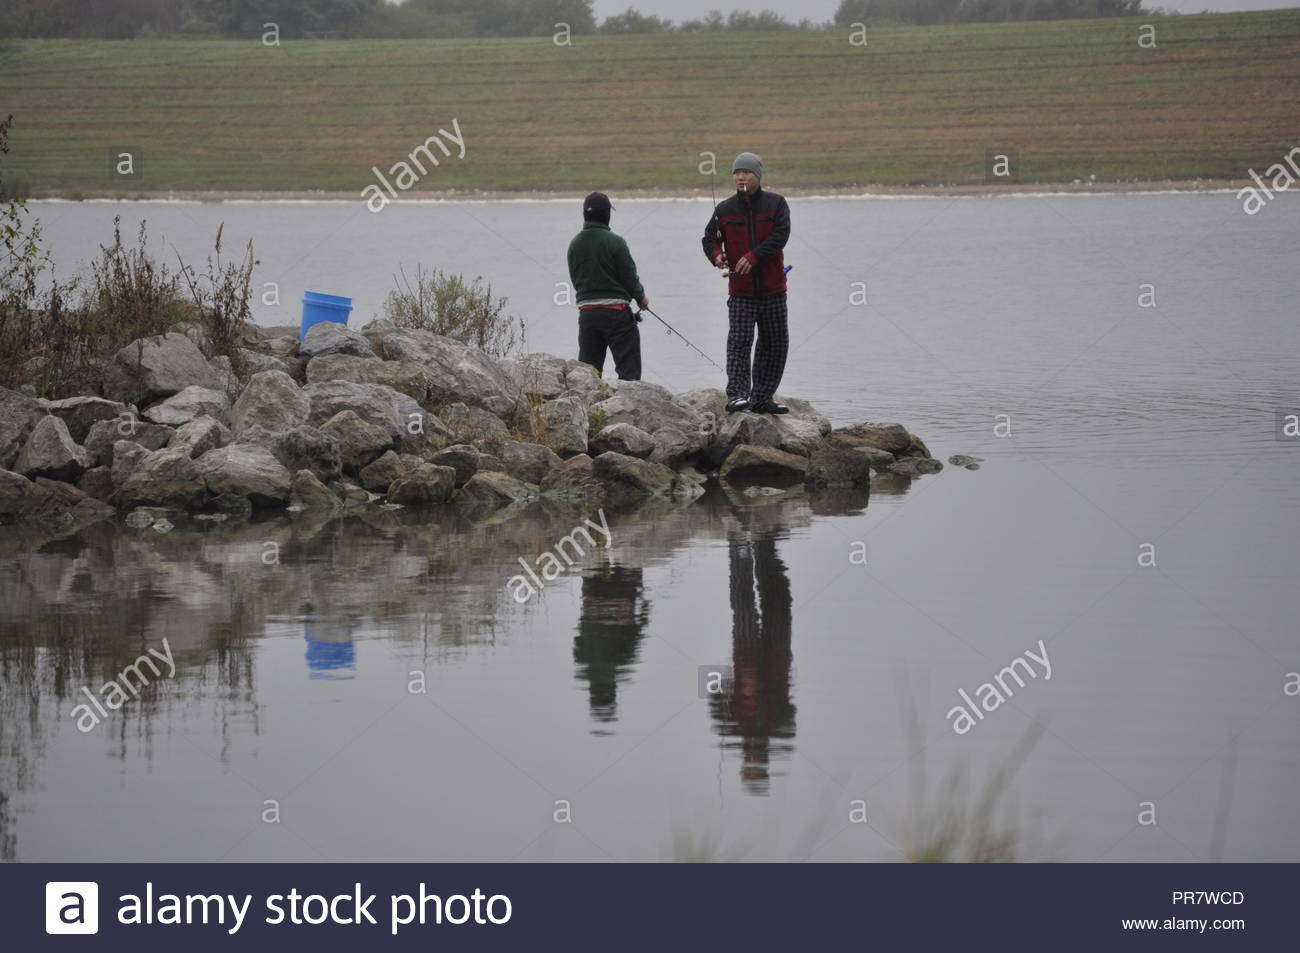 Two Asian fisherman at Holmes Lake Park in Lincoln.  The weather was foul, but they fished on and appeared to be enjoying themselves. - Stock Image